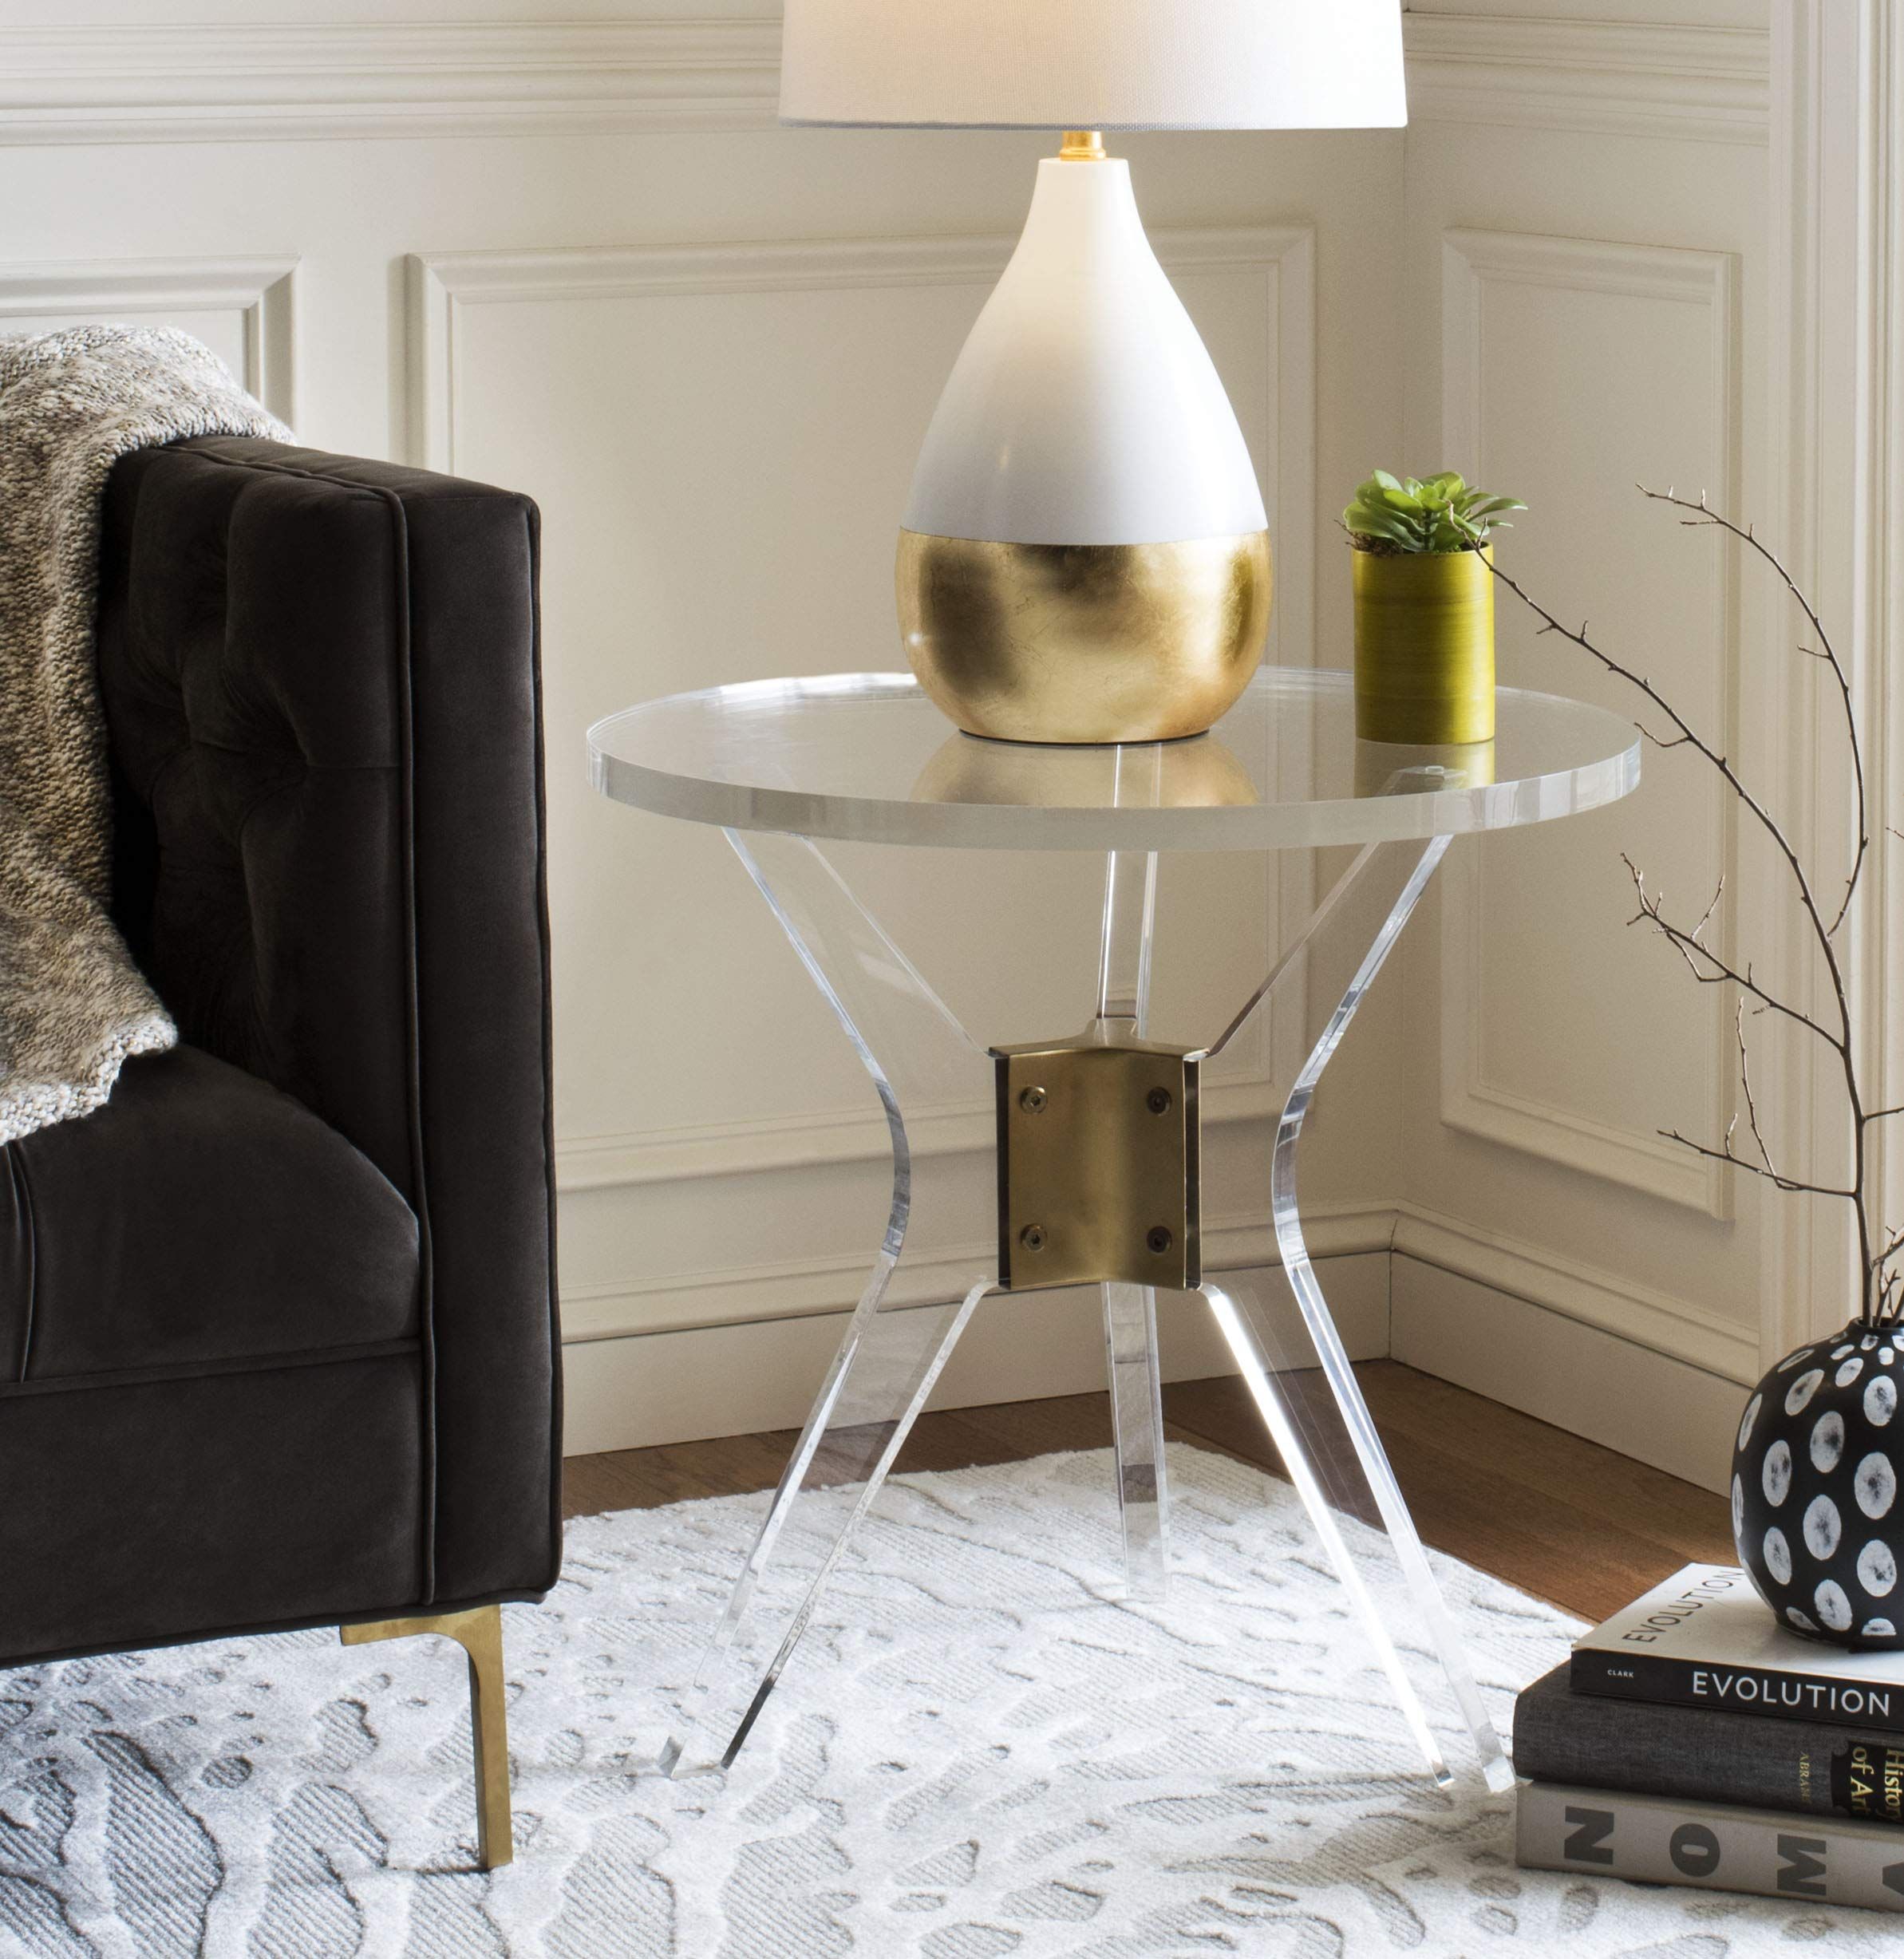 Safavieh Home Collection Werner Acrylic End Table, Clear by Safavieh